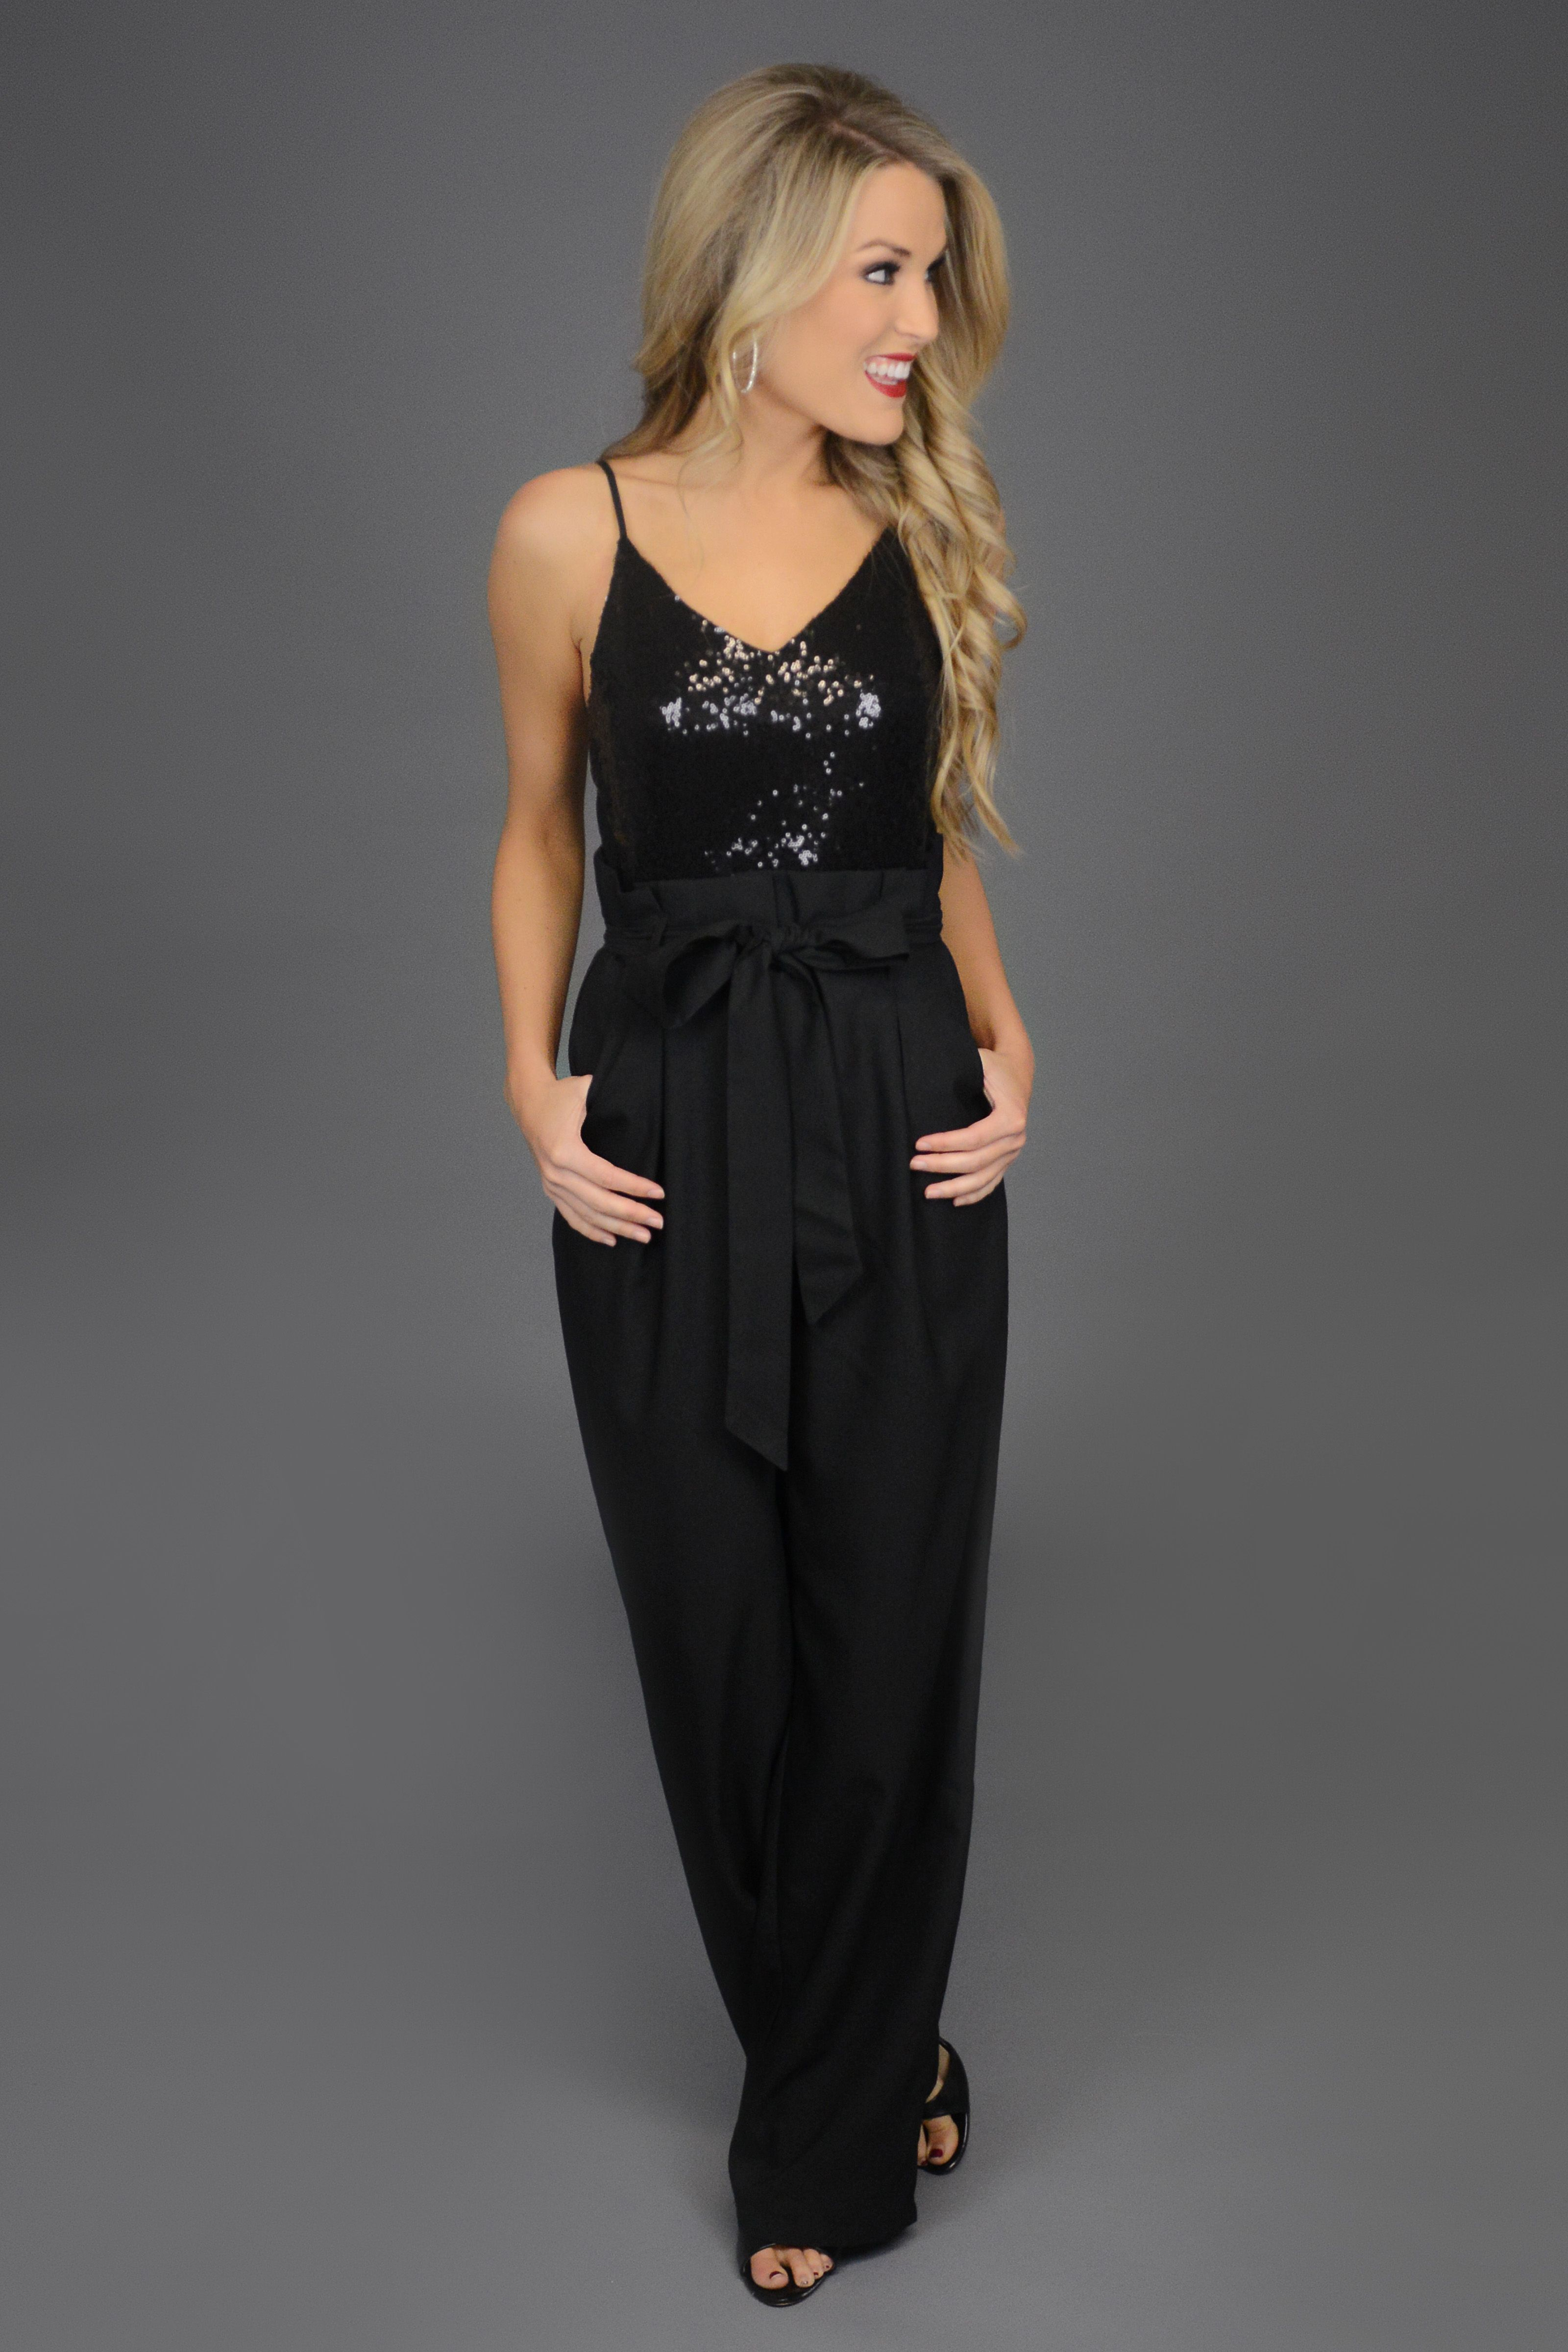 d9c4166c80b Black jumpsuit. holiday party outfit. christmas party outfit.